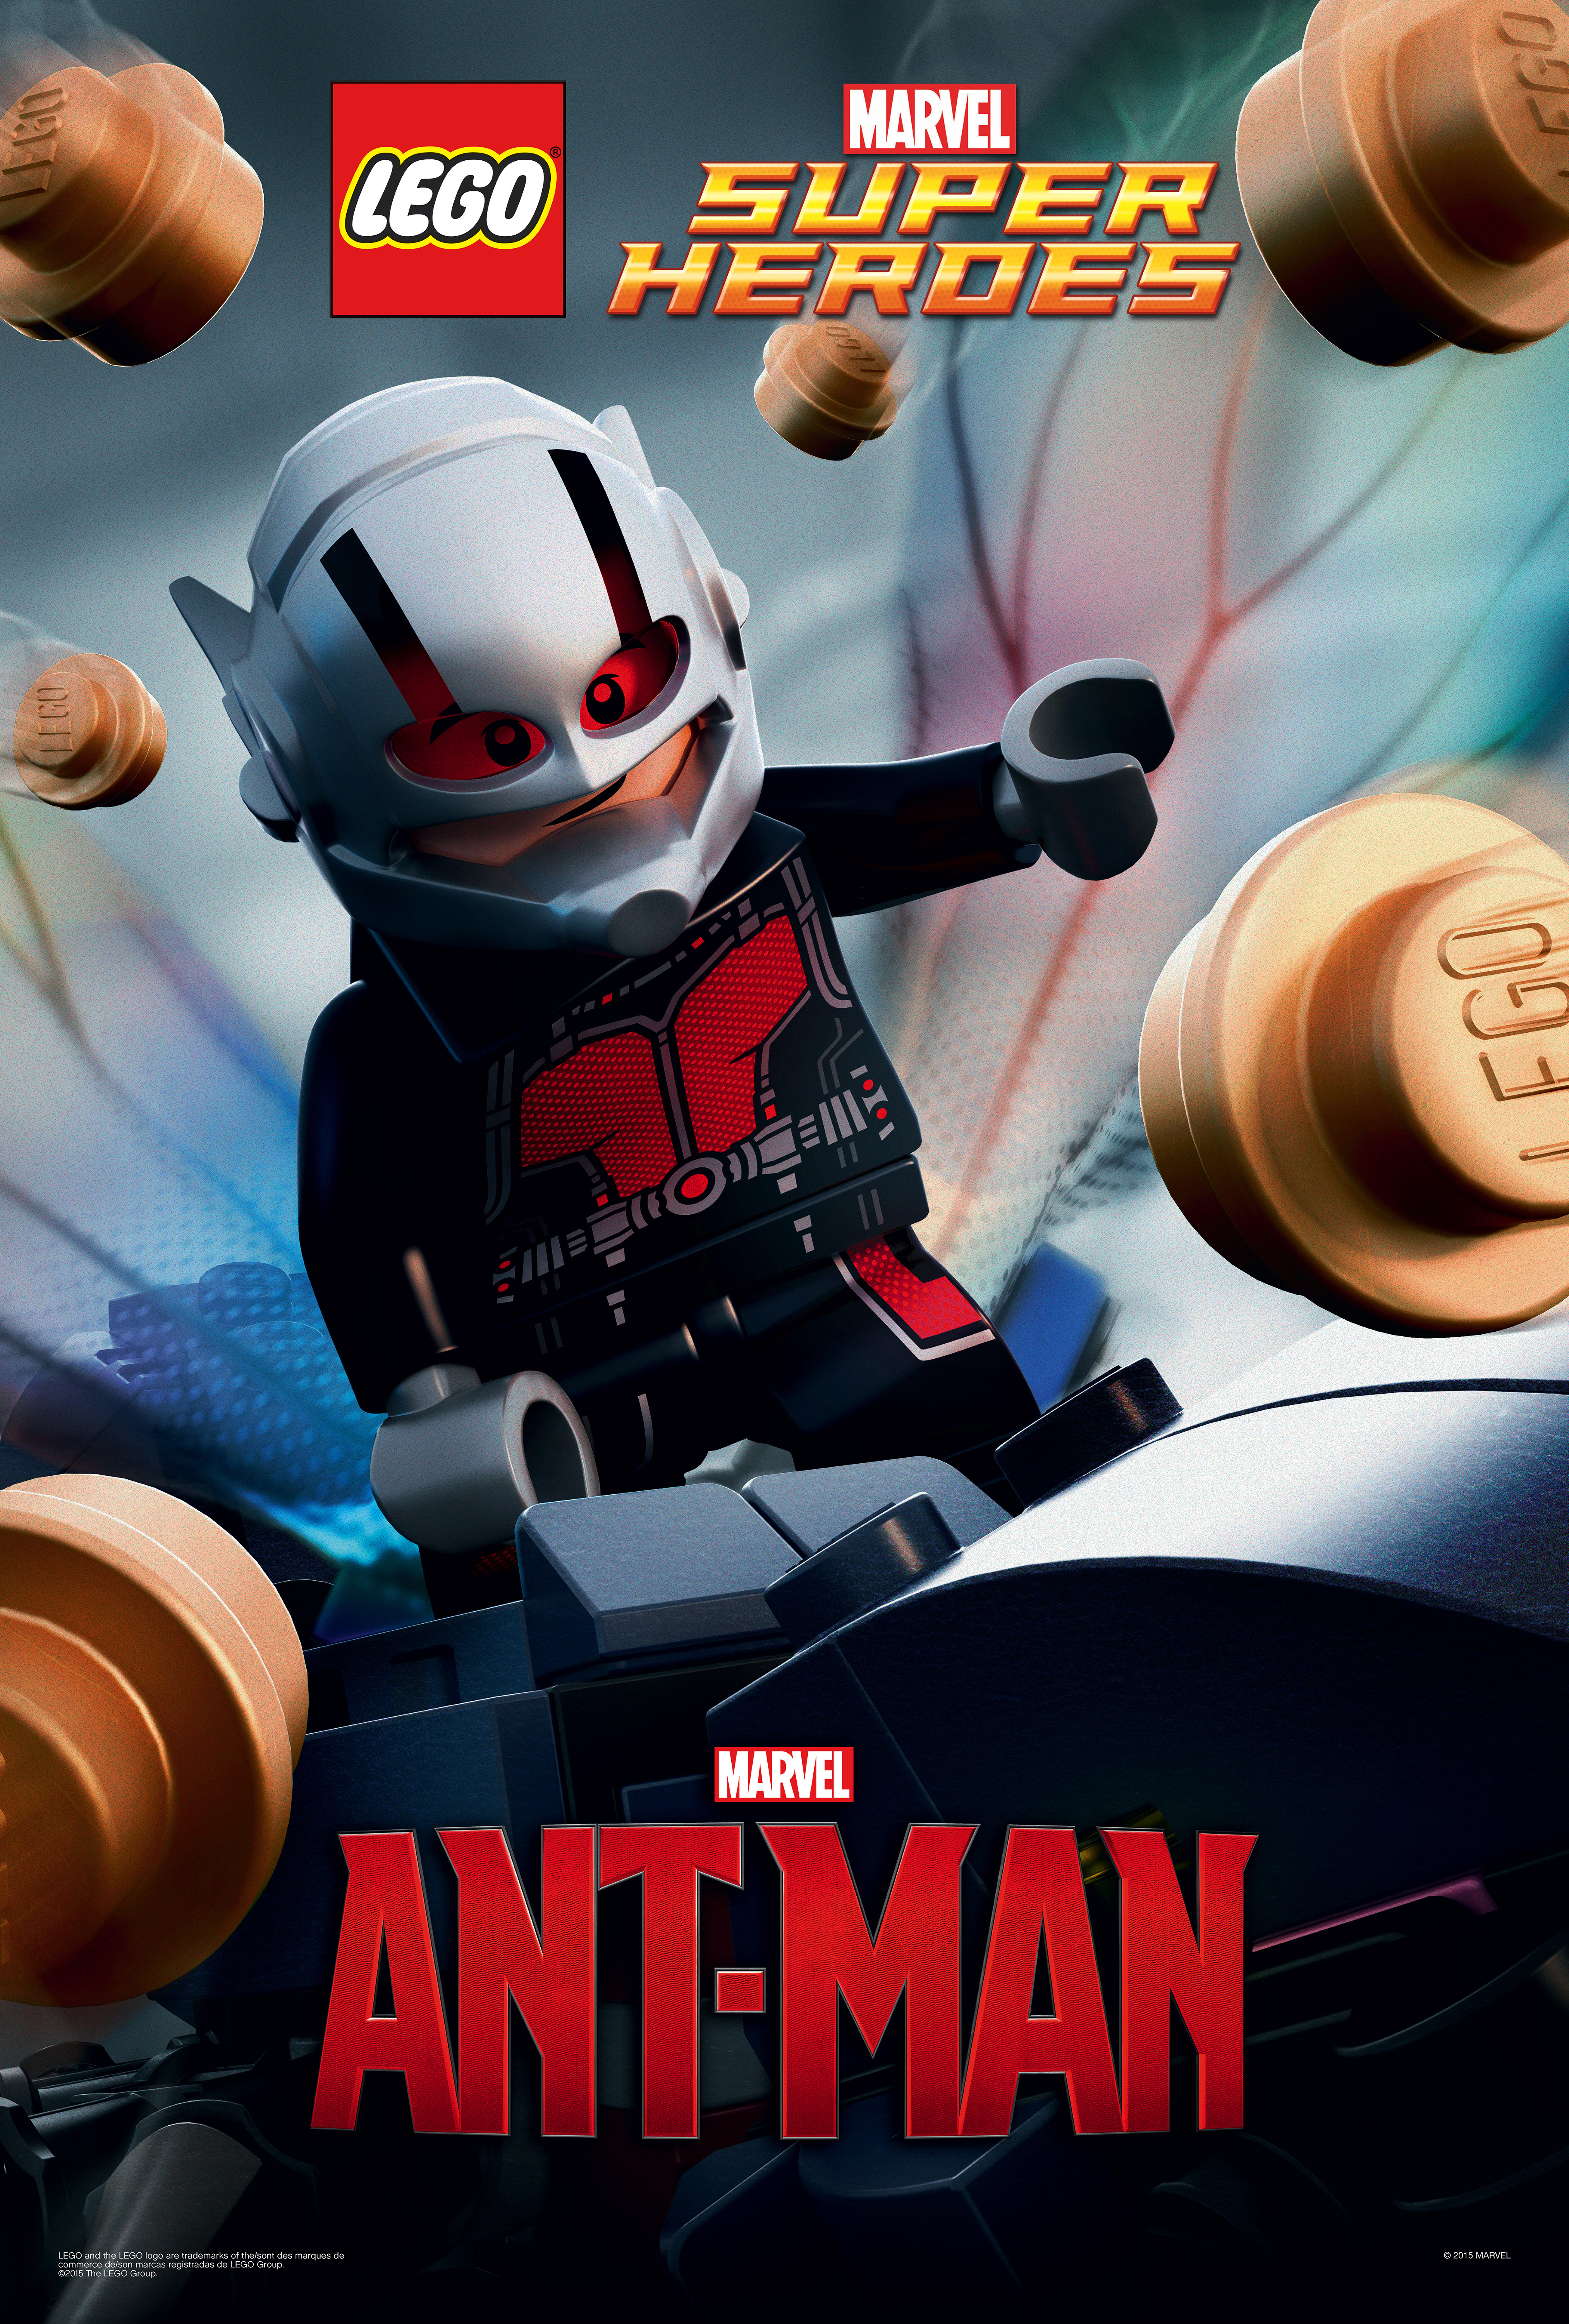 action figure insider 187 antman in lego movie poster